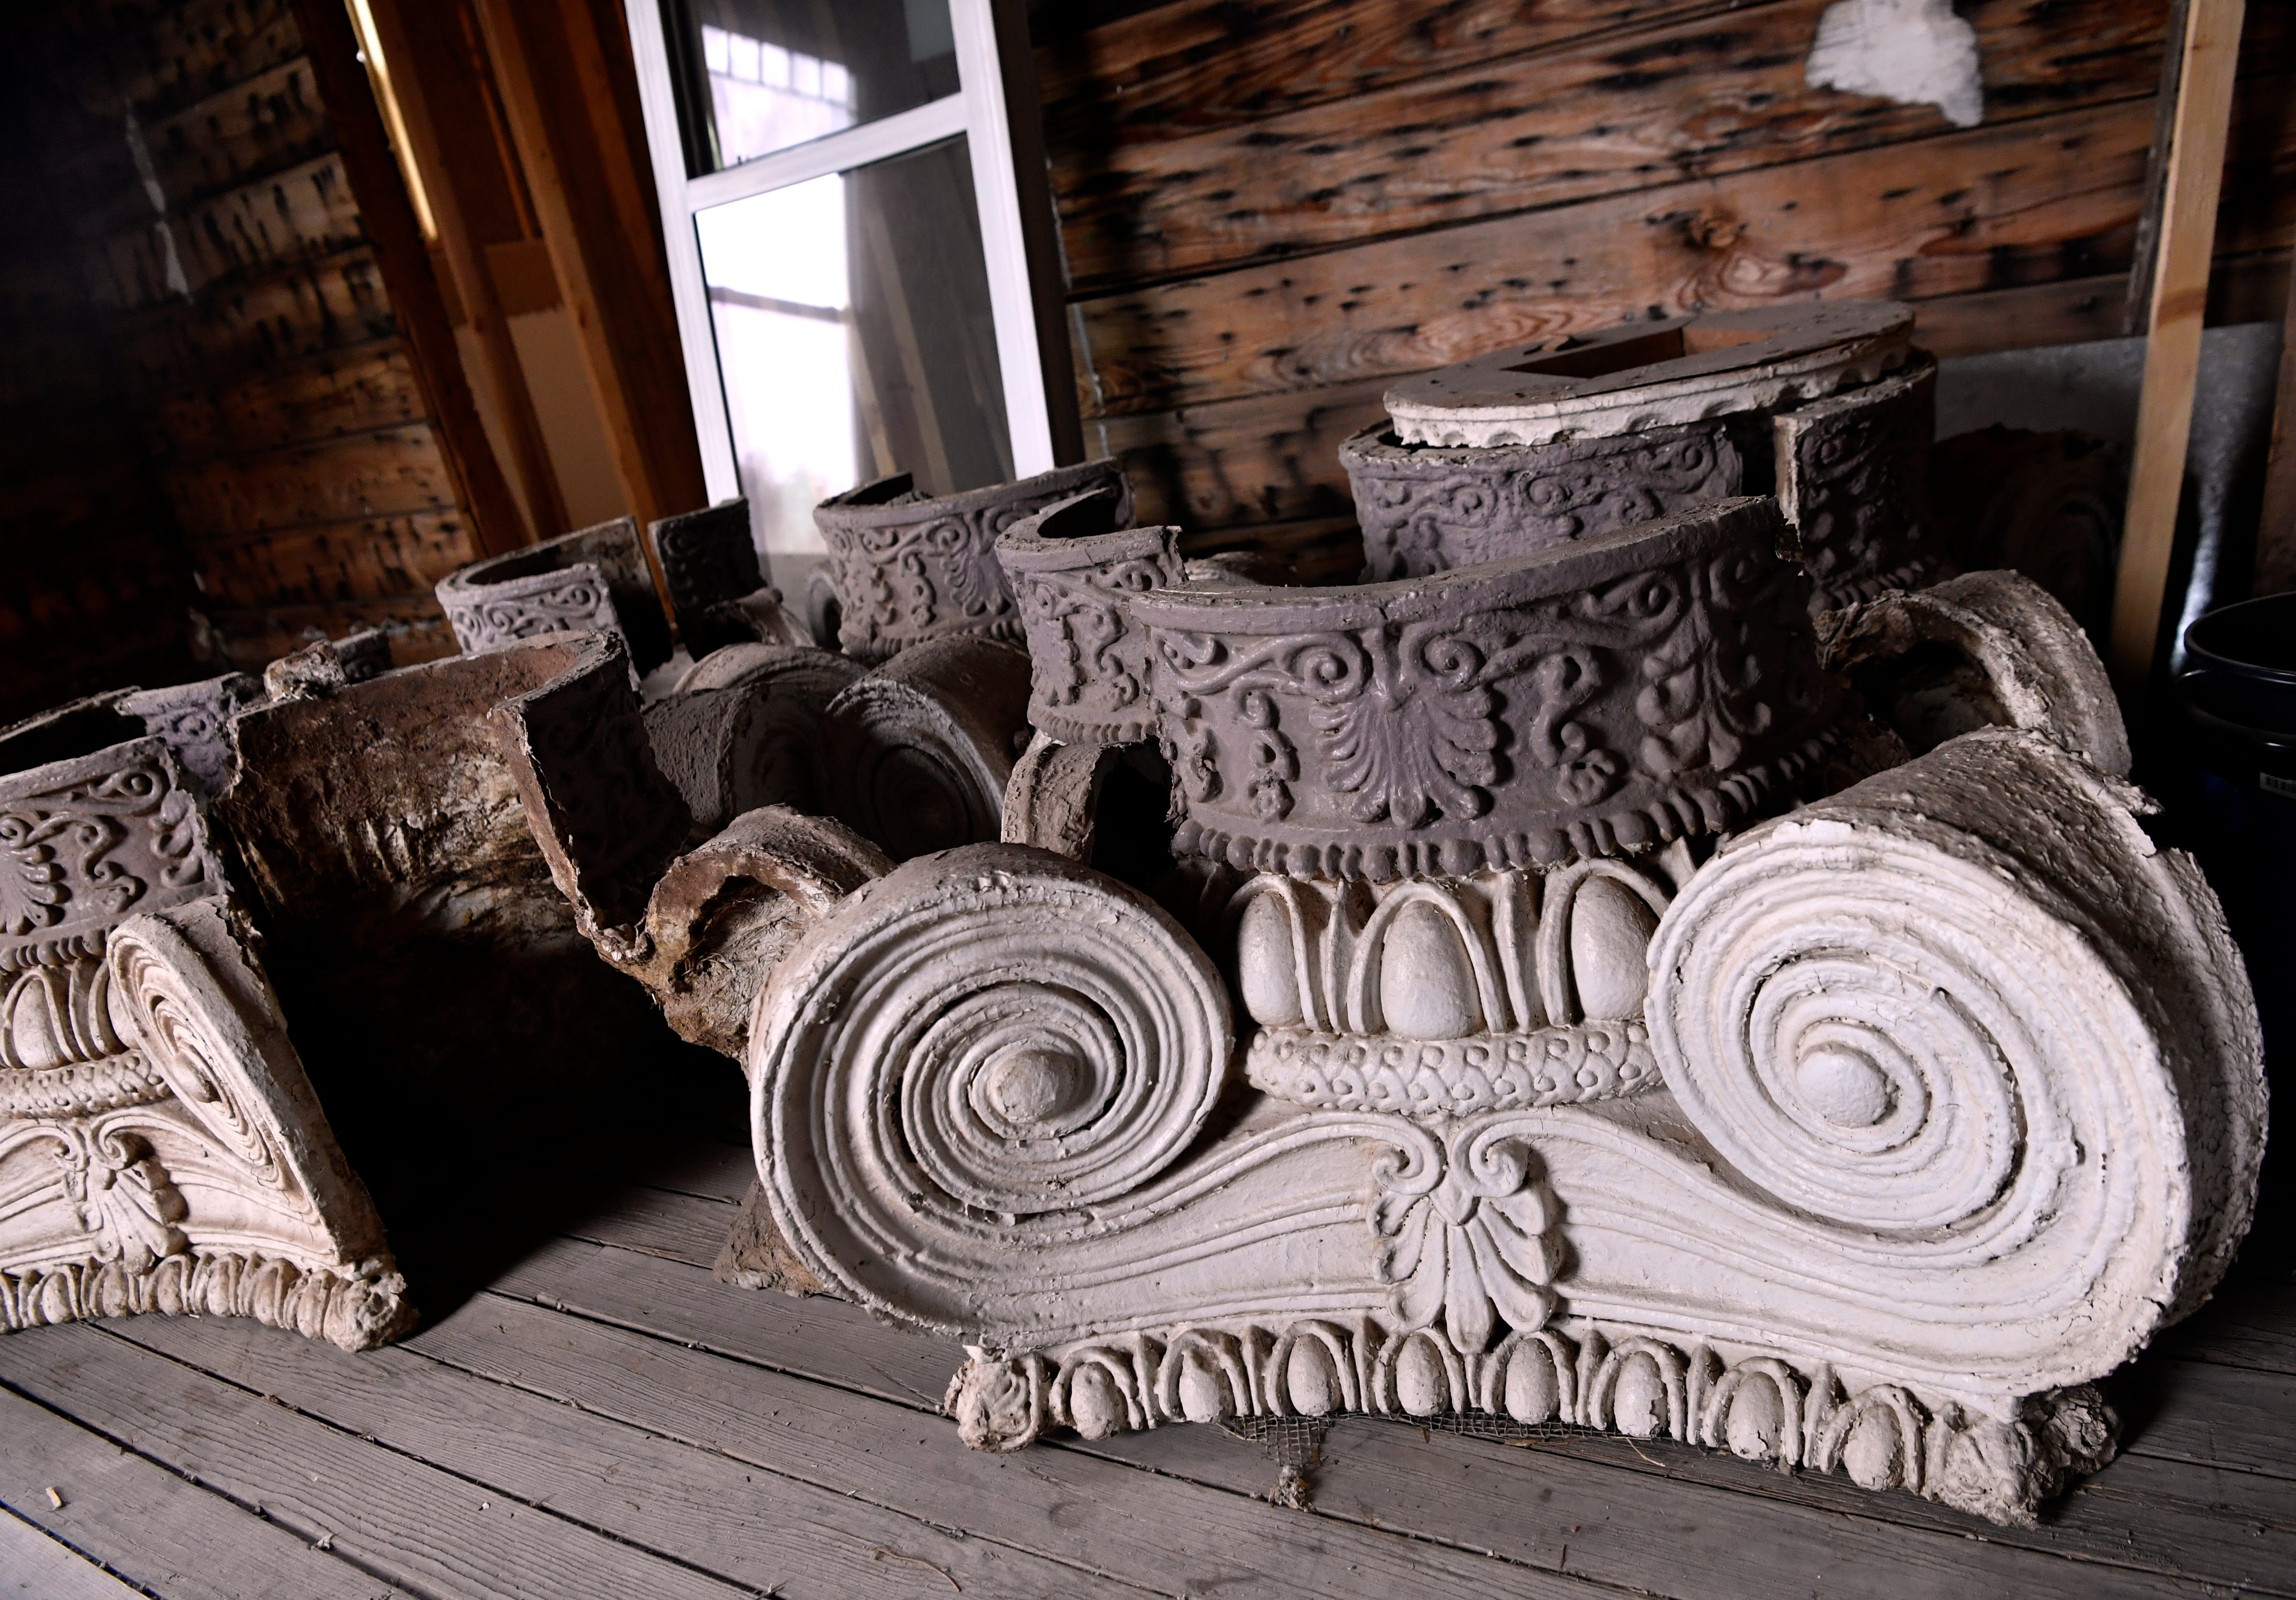 Column capitals are stored in a room in The Resilient, the new name given by the new owners. The 1903 home is currently under renovation and was known as Rosetyme.